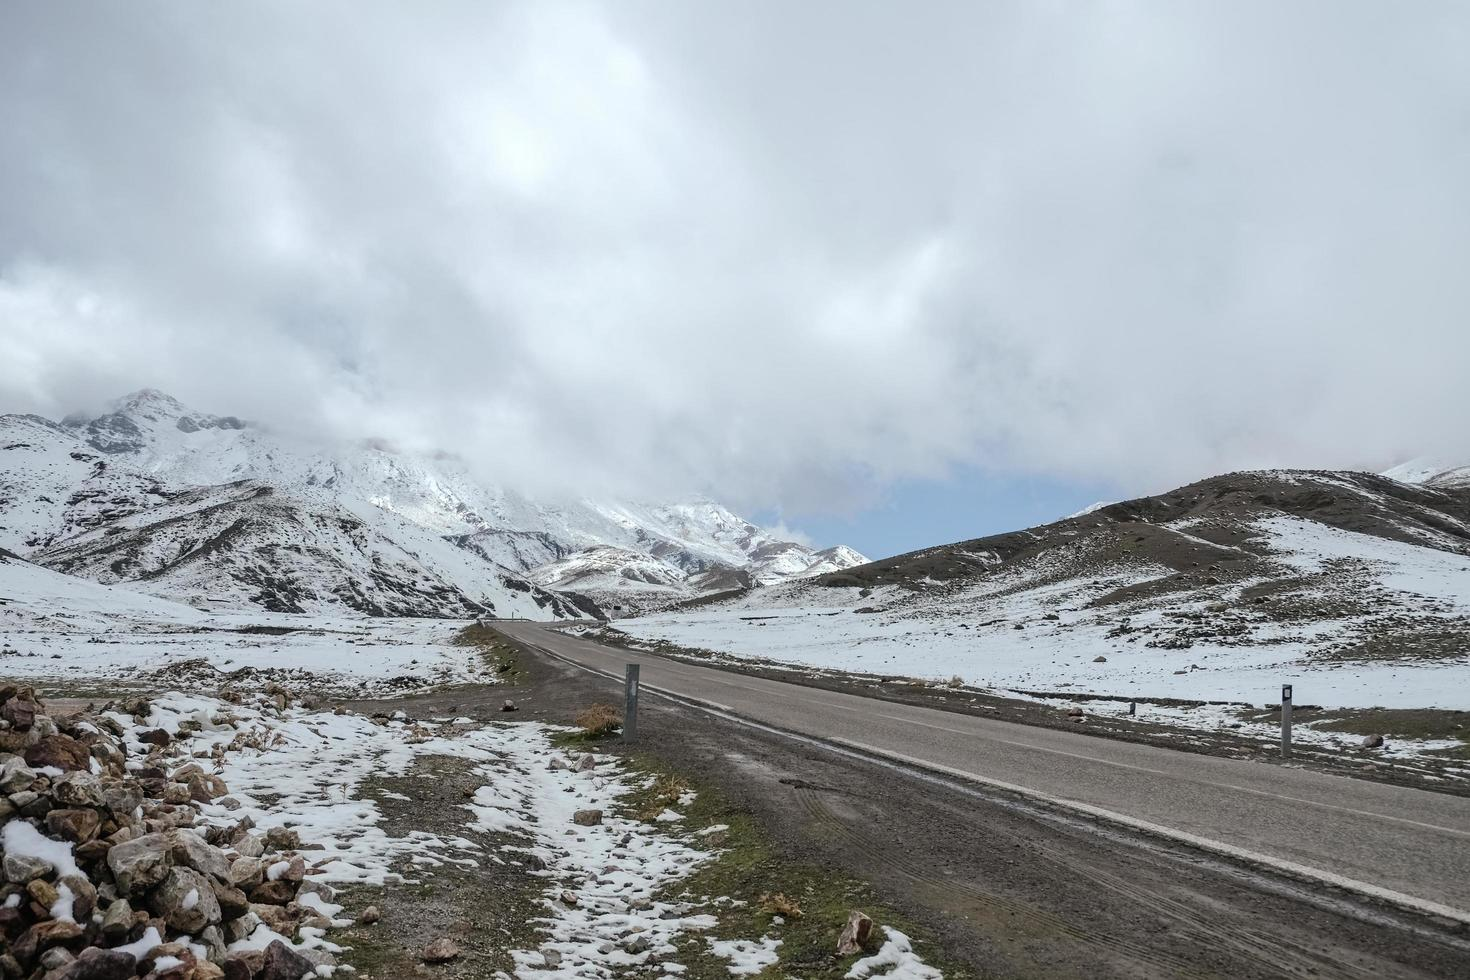 An empty paved road surrounded by snow capped mountains with cloudy sky in the High Atlas range. Morocco. photo